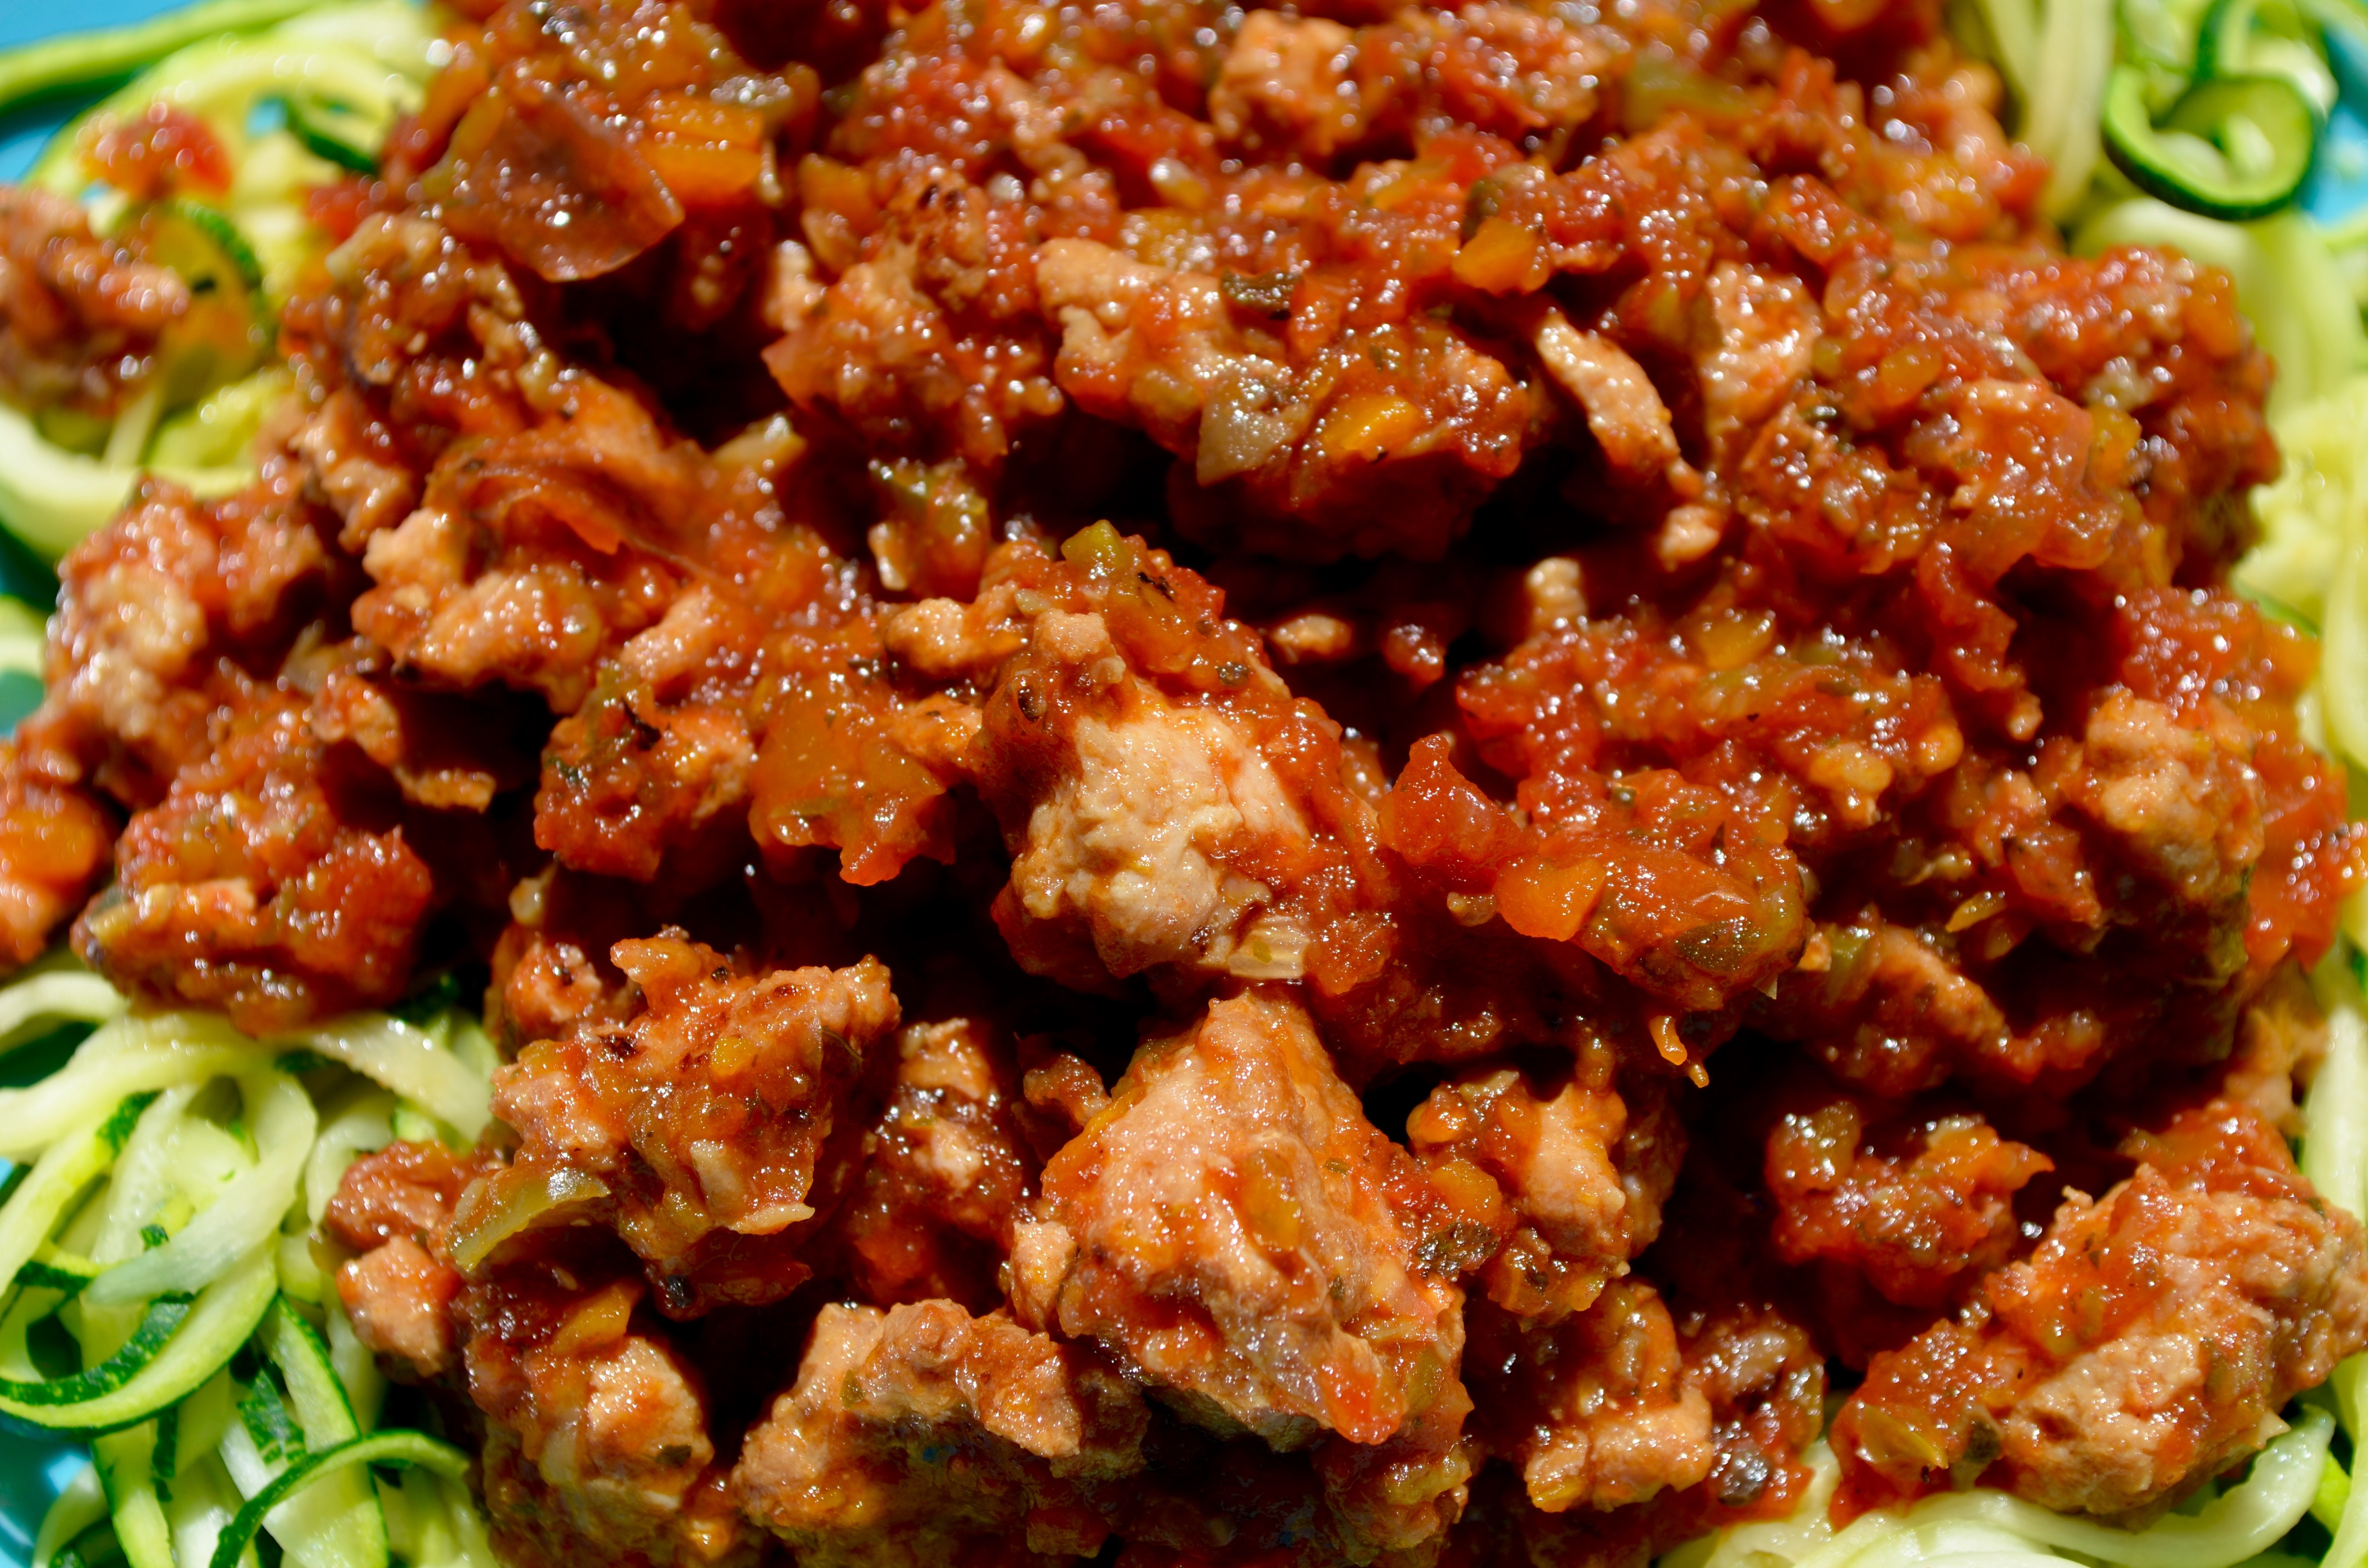 Slow cooker turkey bolognese sauce at laughlovekiss.com